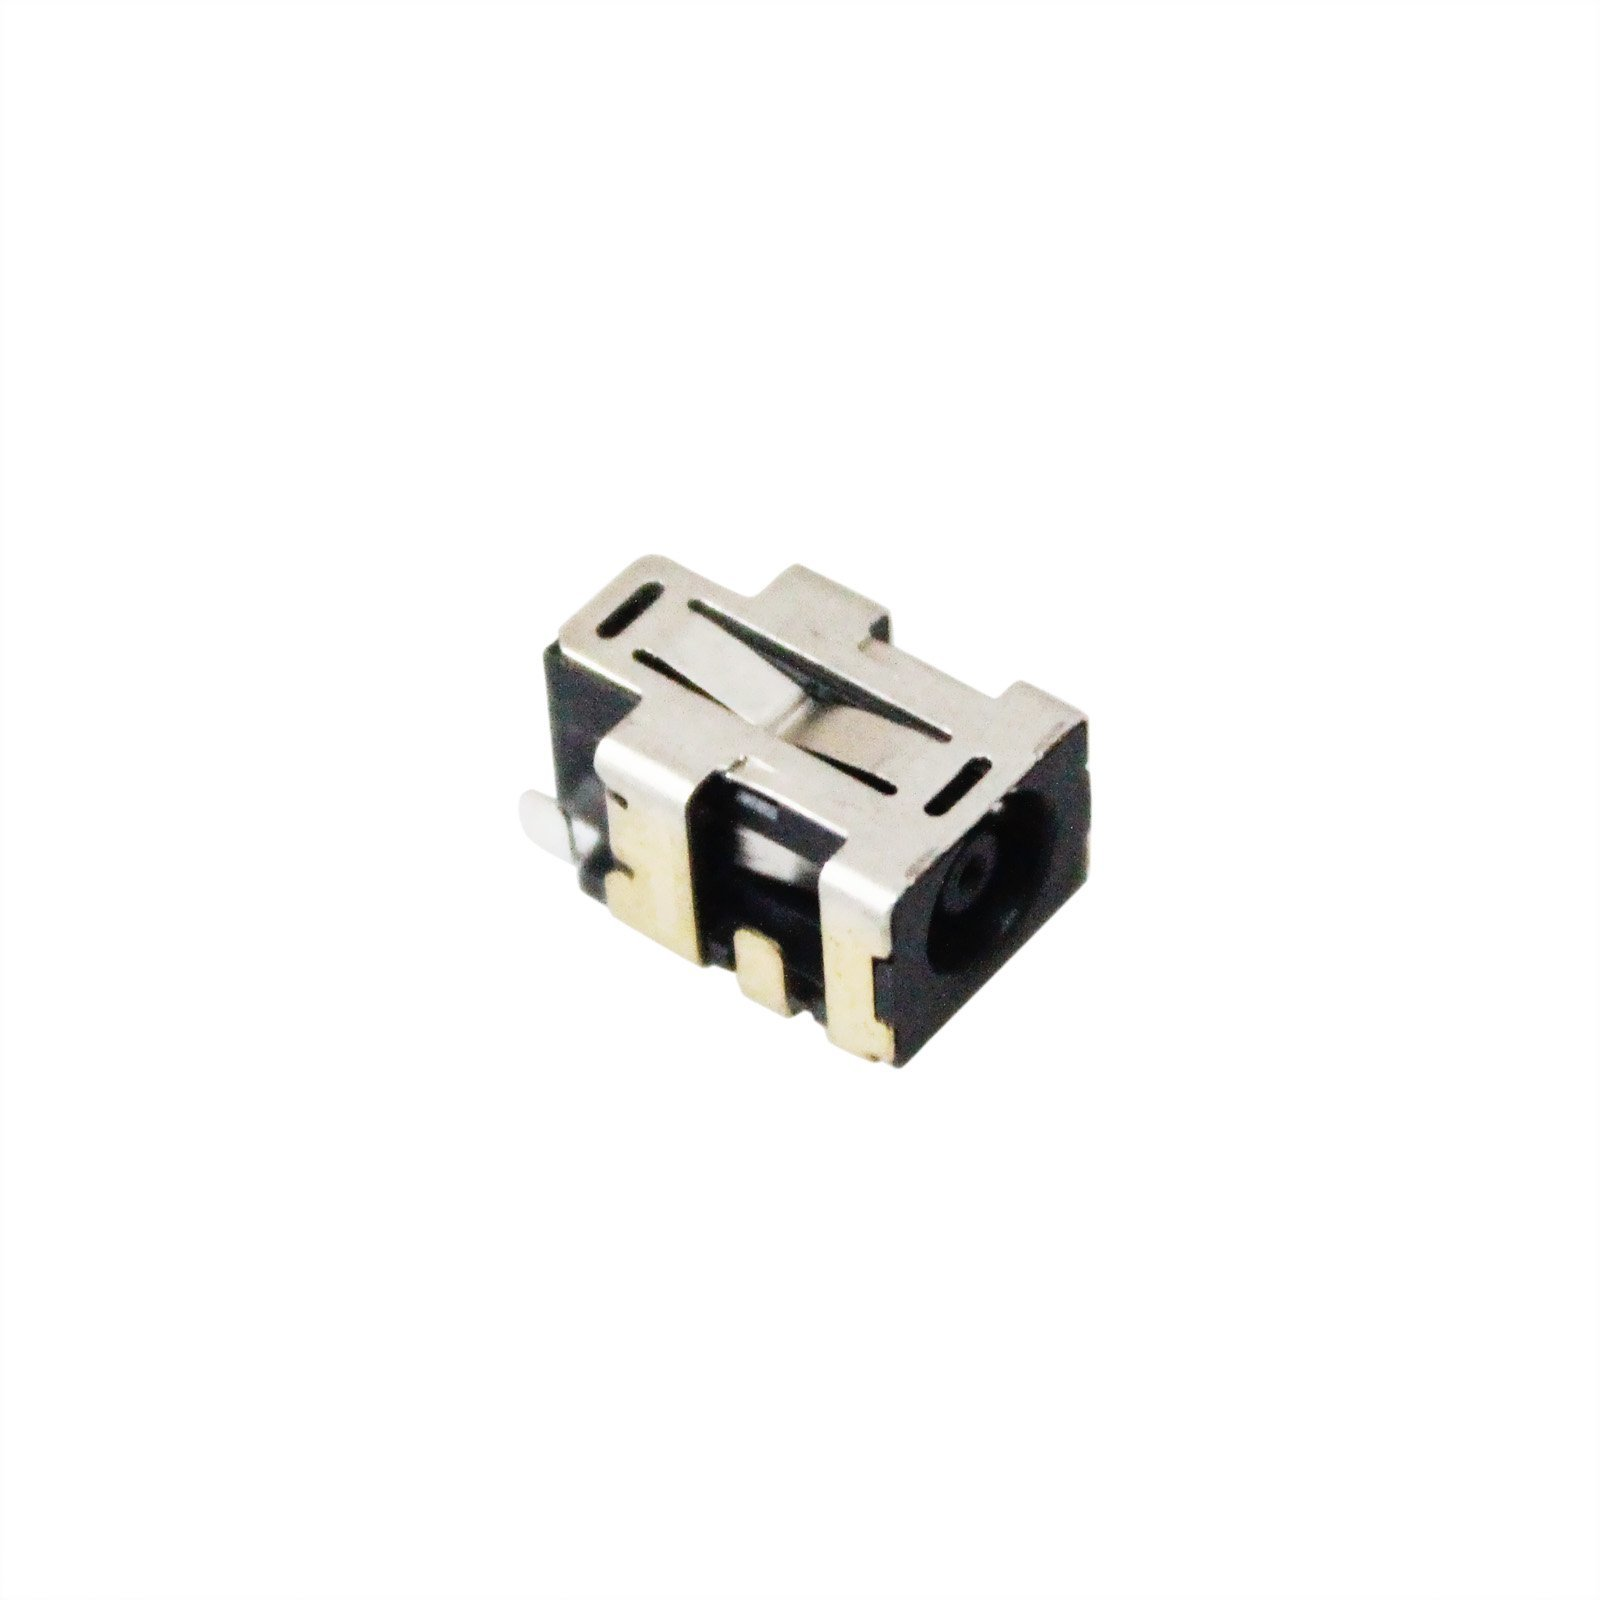 GinTai DC Power Jack Replacement for ASUS Compatible with n501jw ux501jw G501J G501JW G501JW-DS71 UX501V UX501VW by GinTai (Image #5)